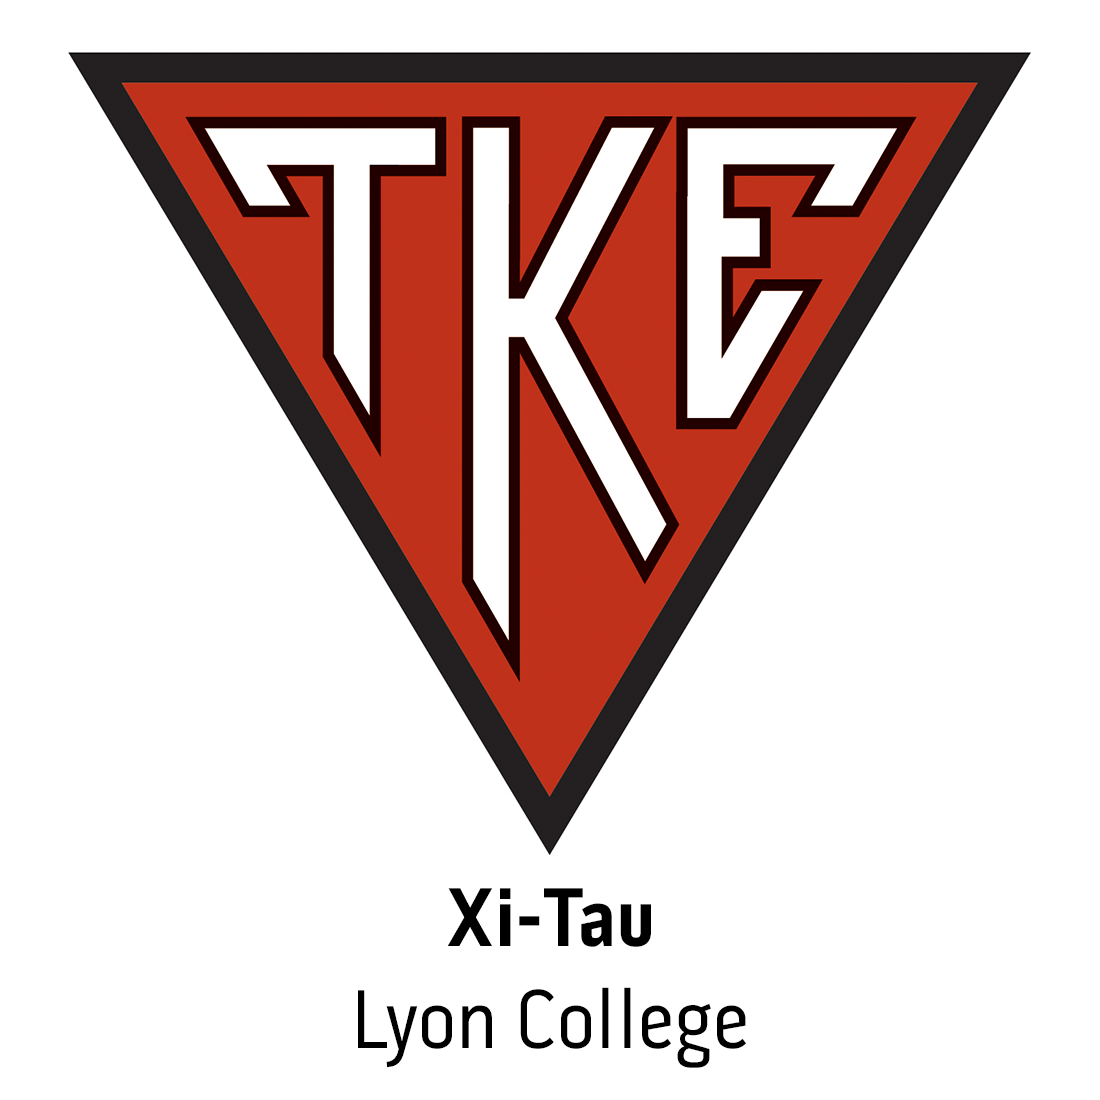 Xi-Tau Chapter at Lyon College